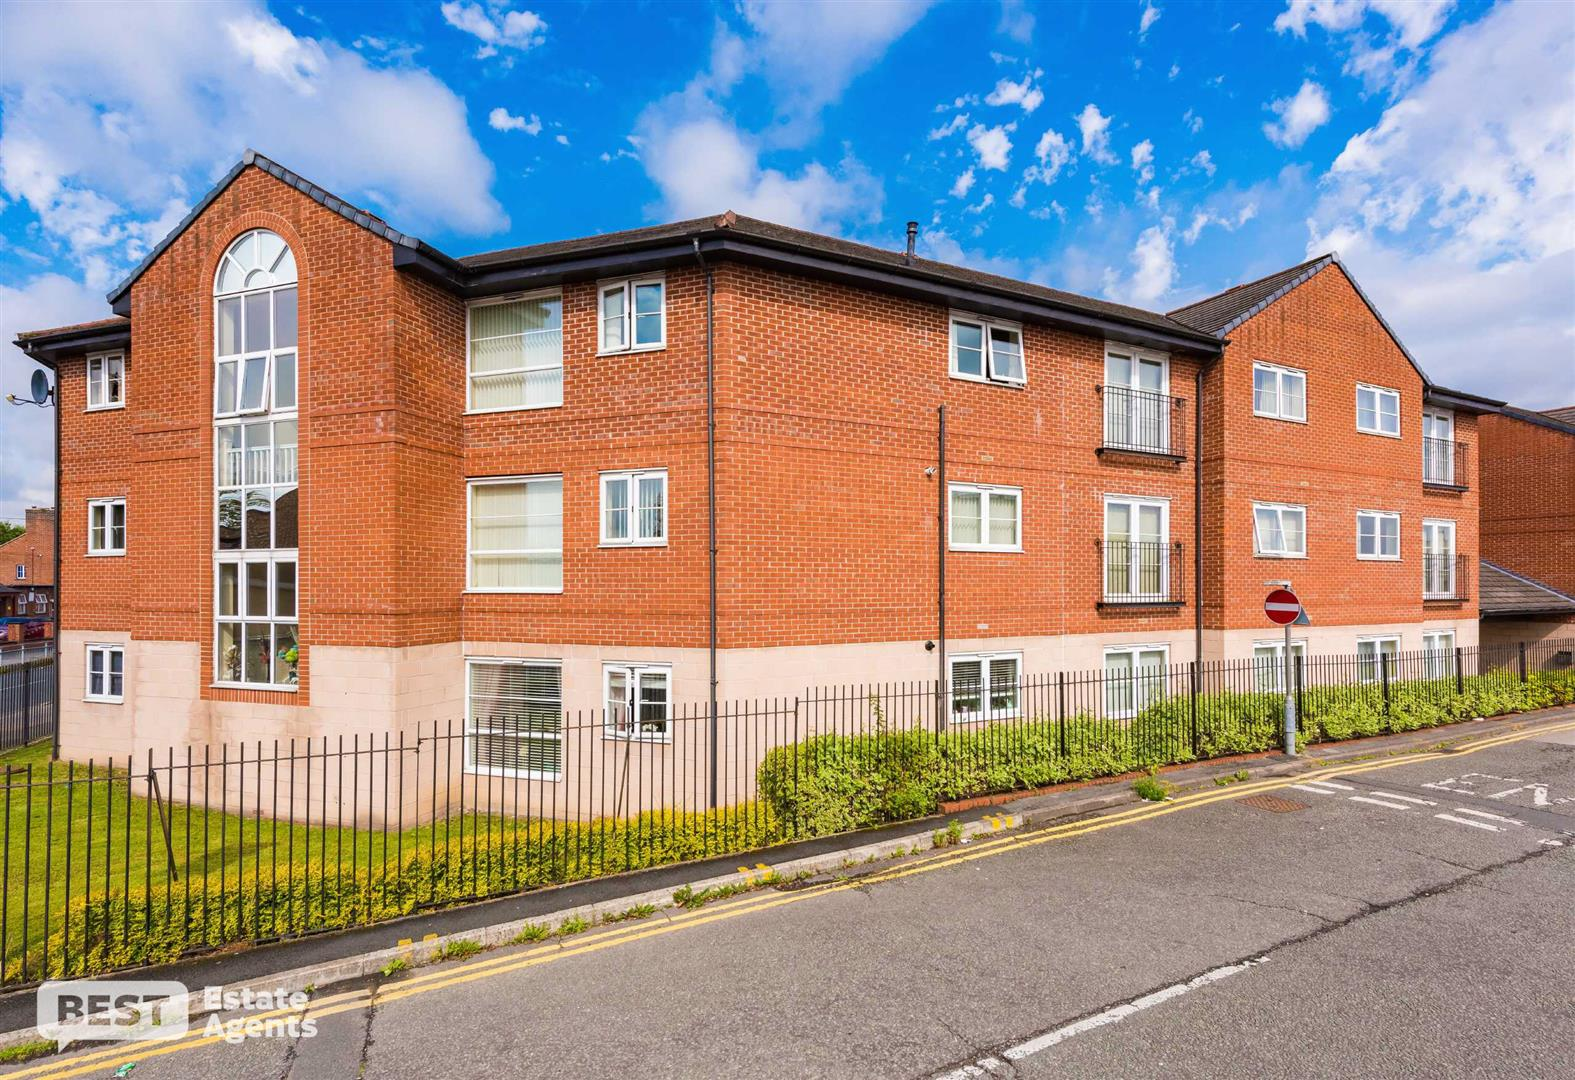 Walmsley Court, Leigh, Greater Manchester BEST Estate Agents